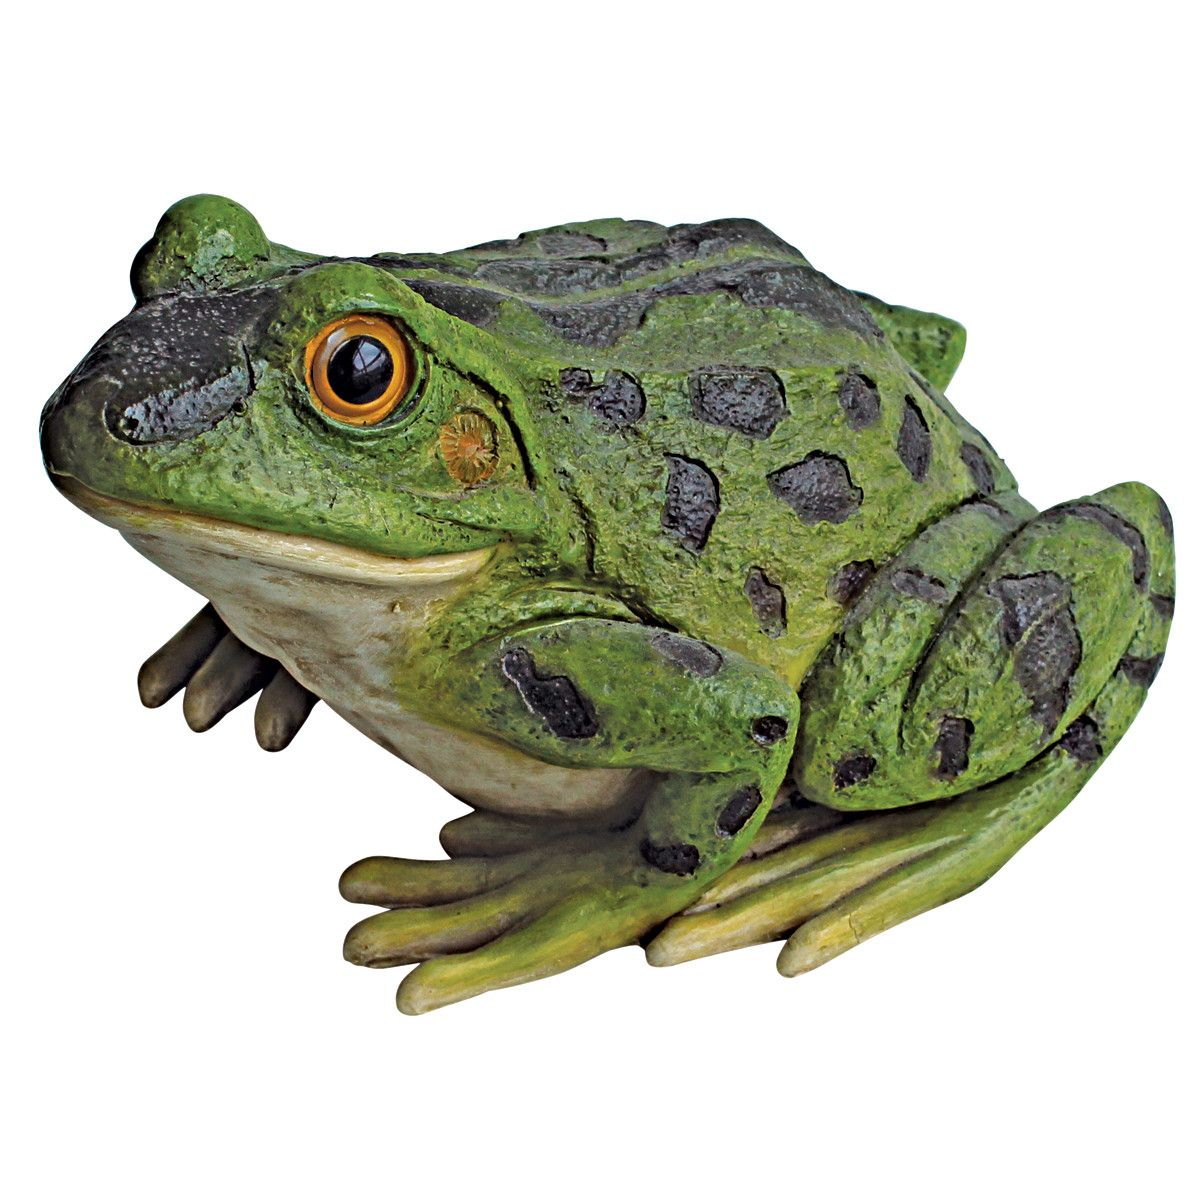 Ribbit the Frog and Garden Toad Statue | Toad, Frogs and Gardens